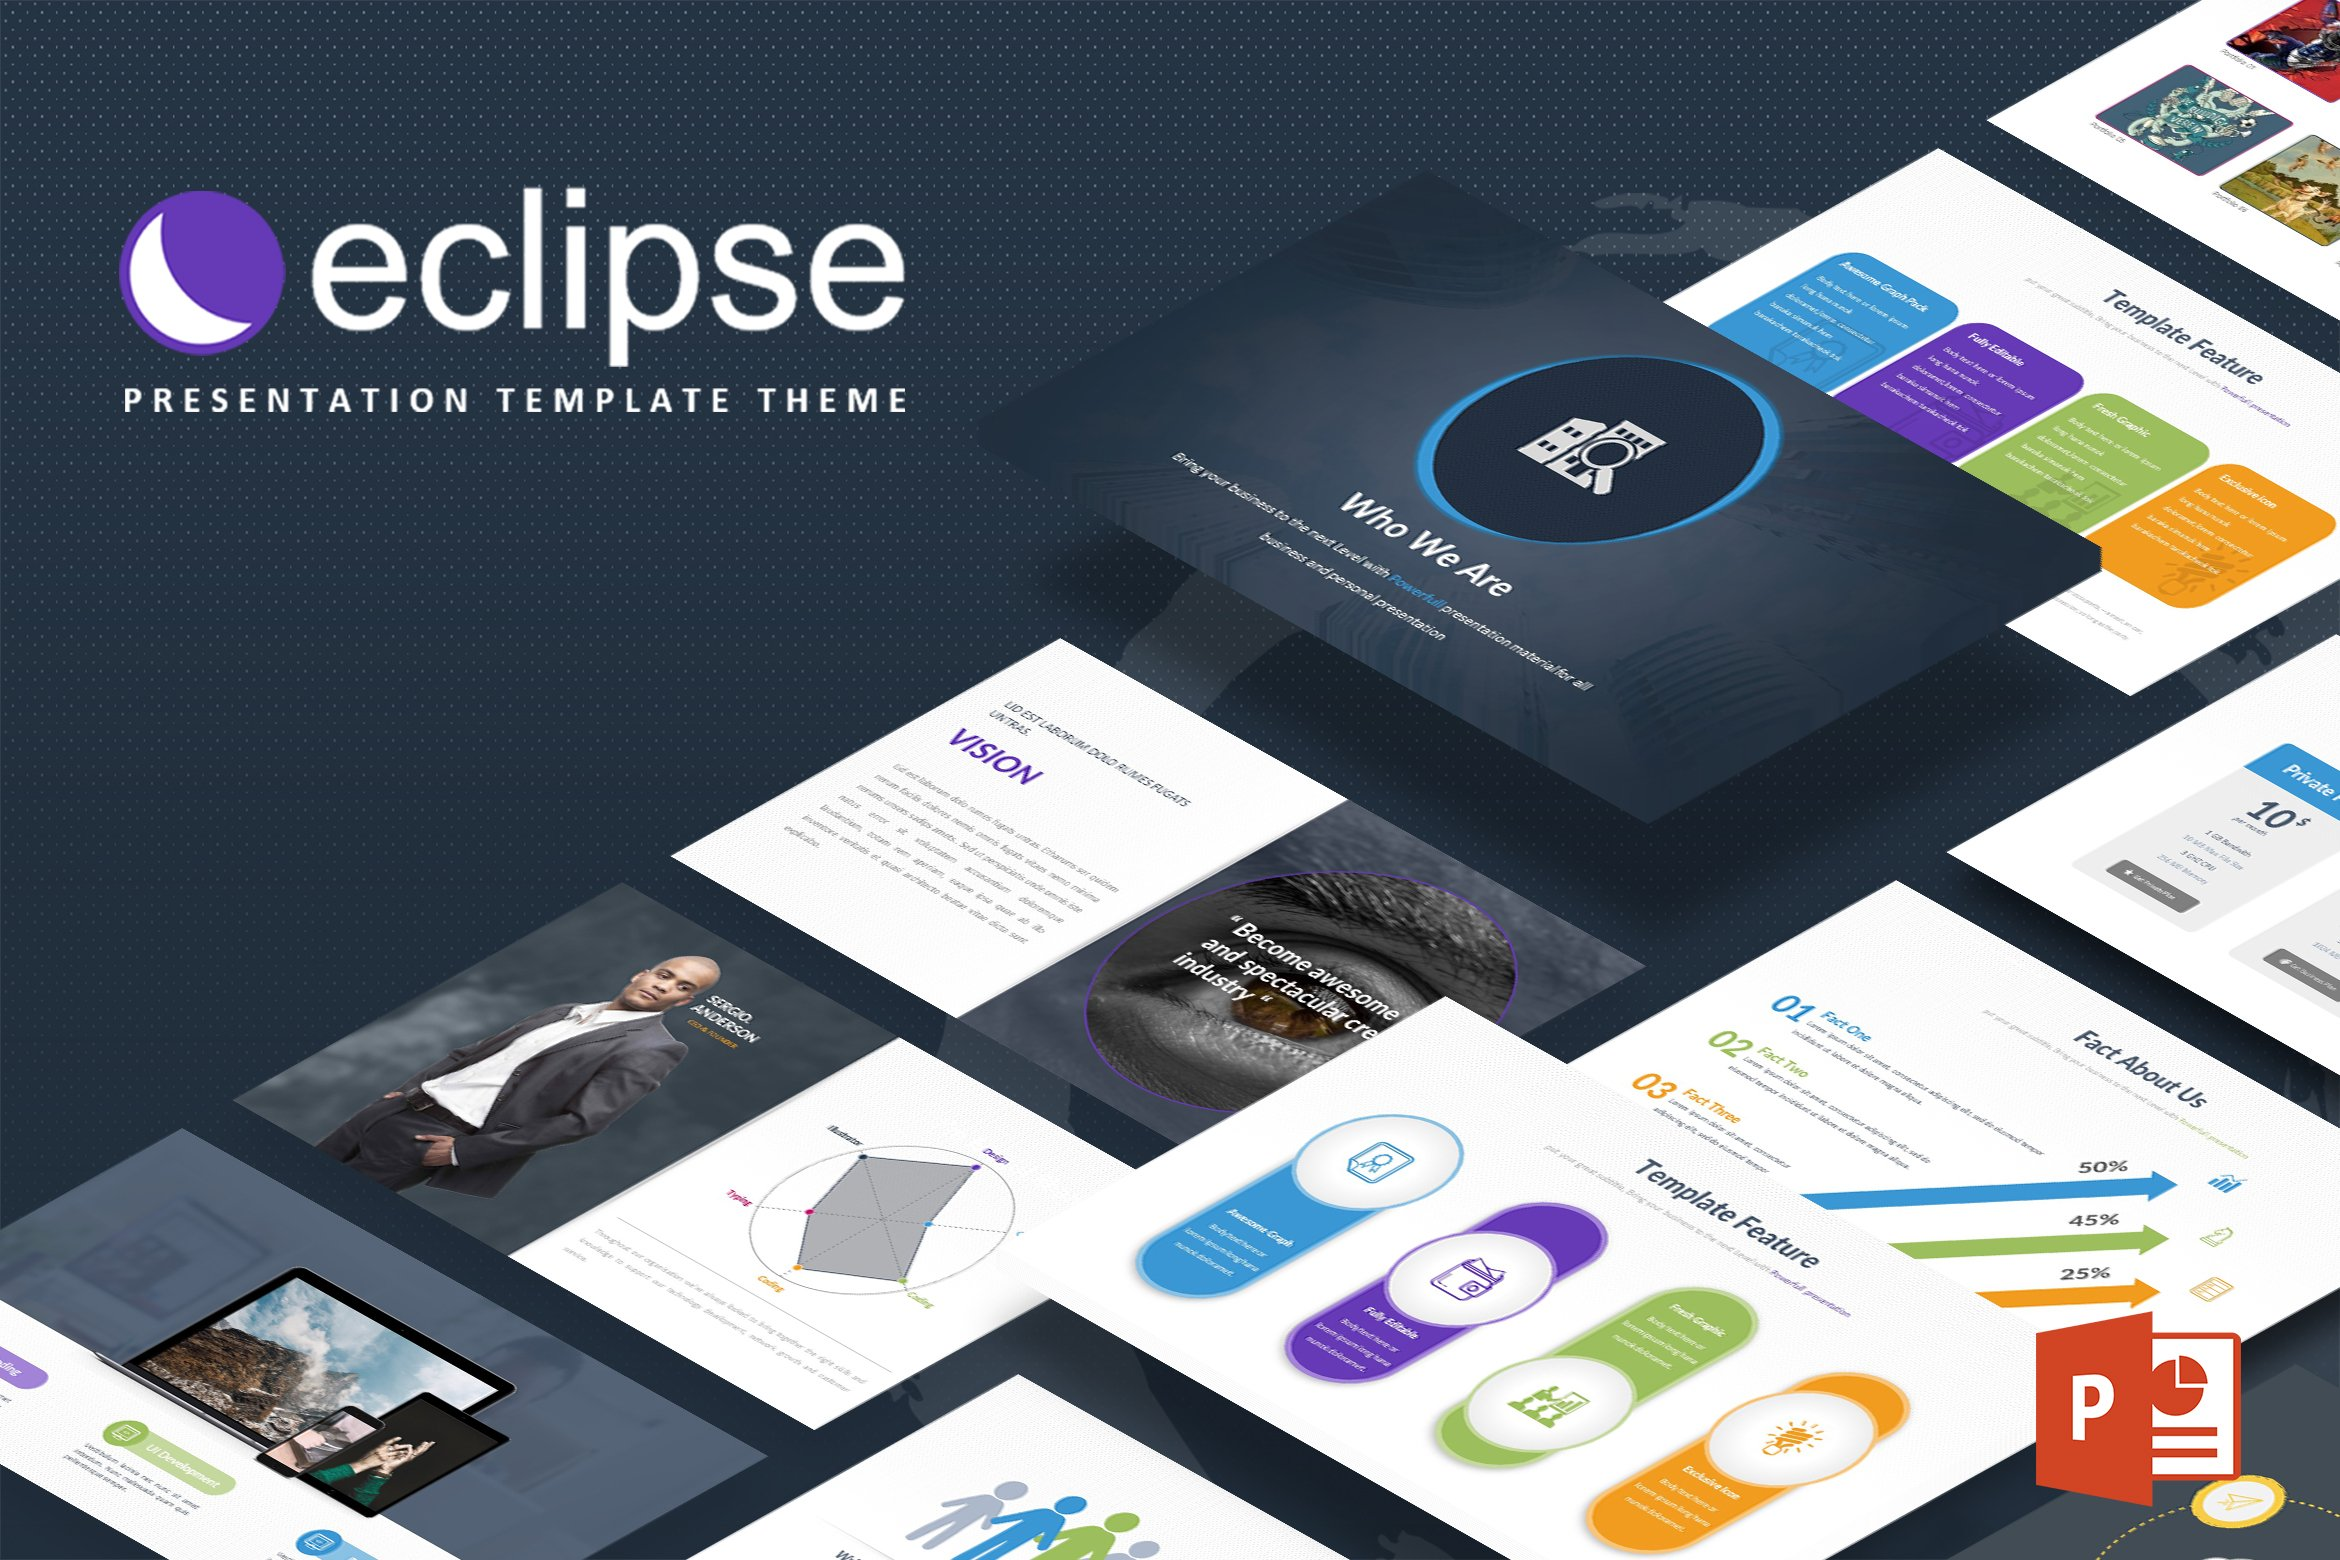 eclipse html template - eclipse powerpoint template presentation templates